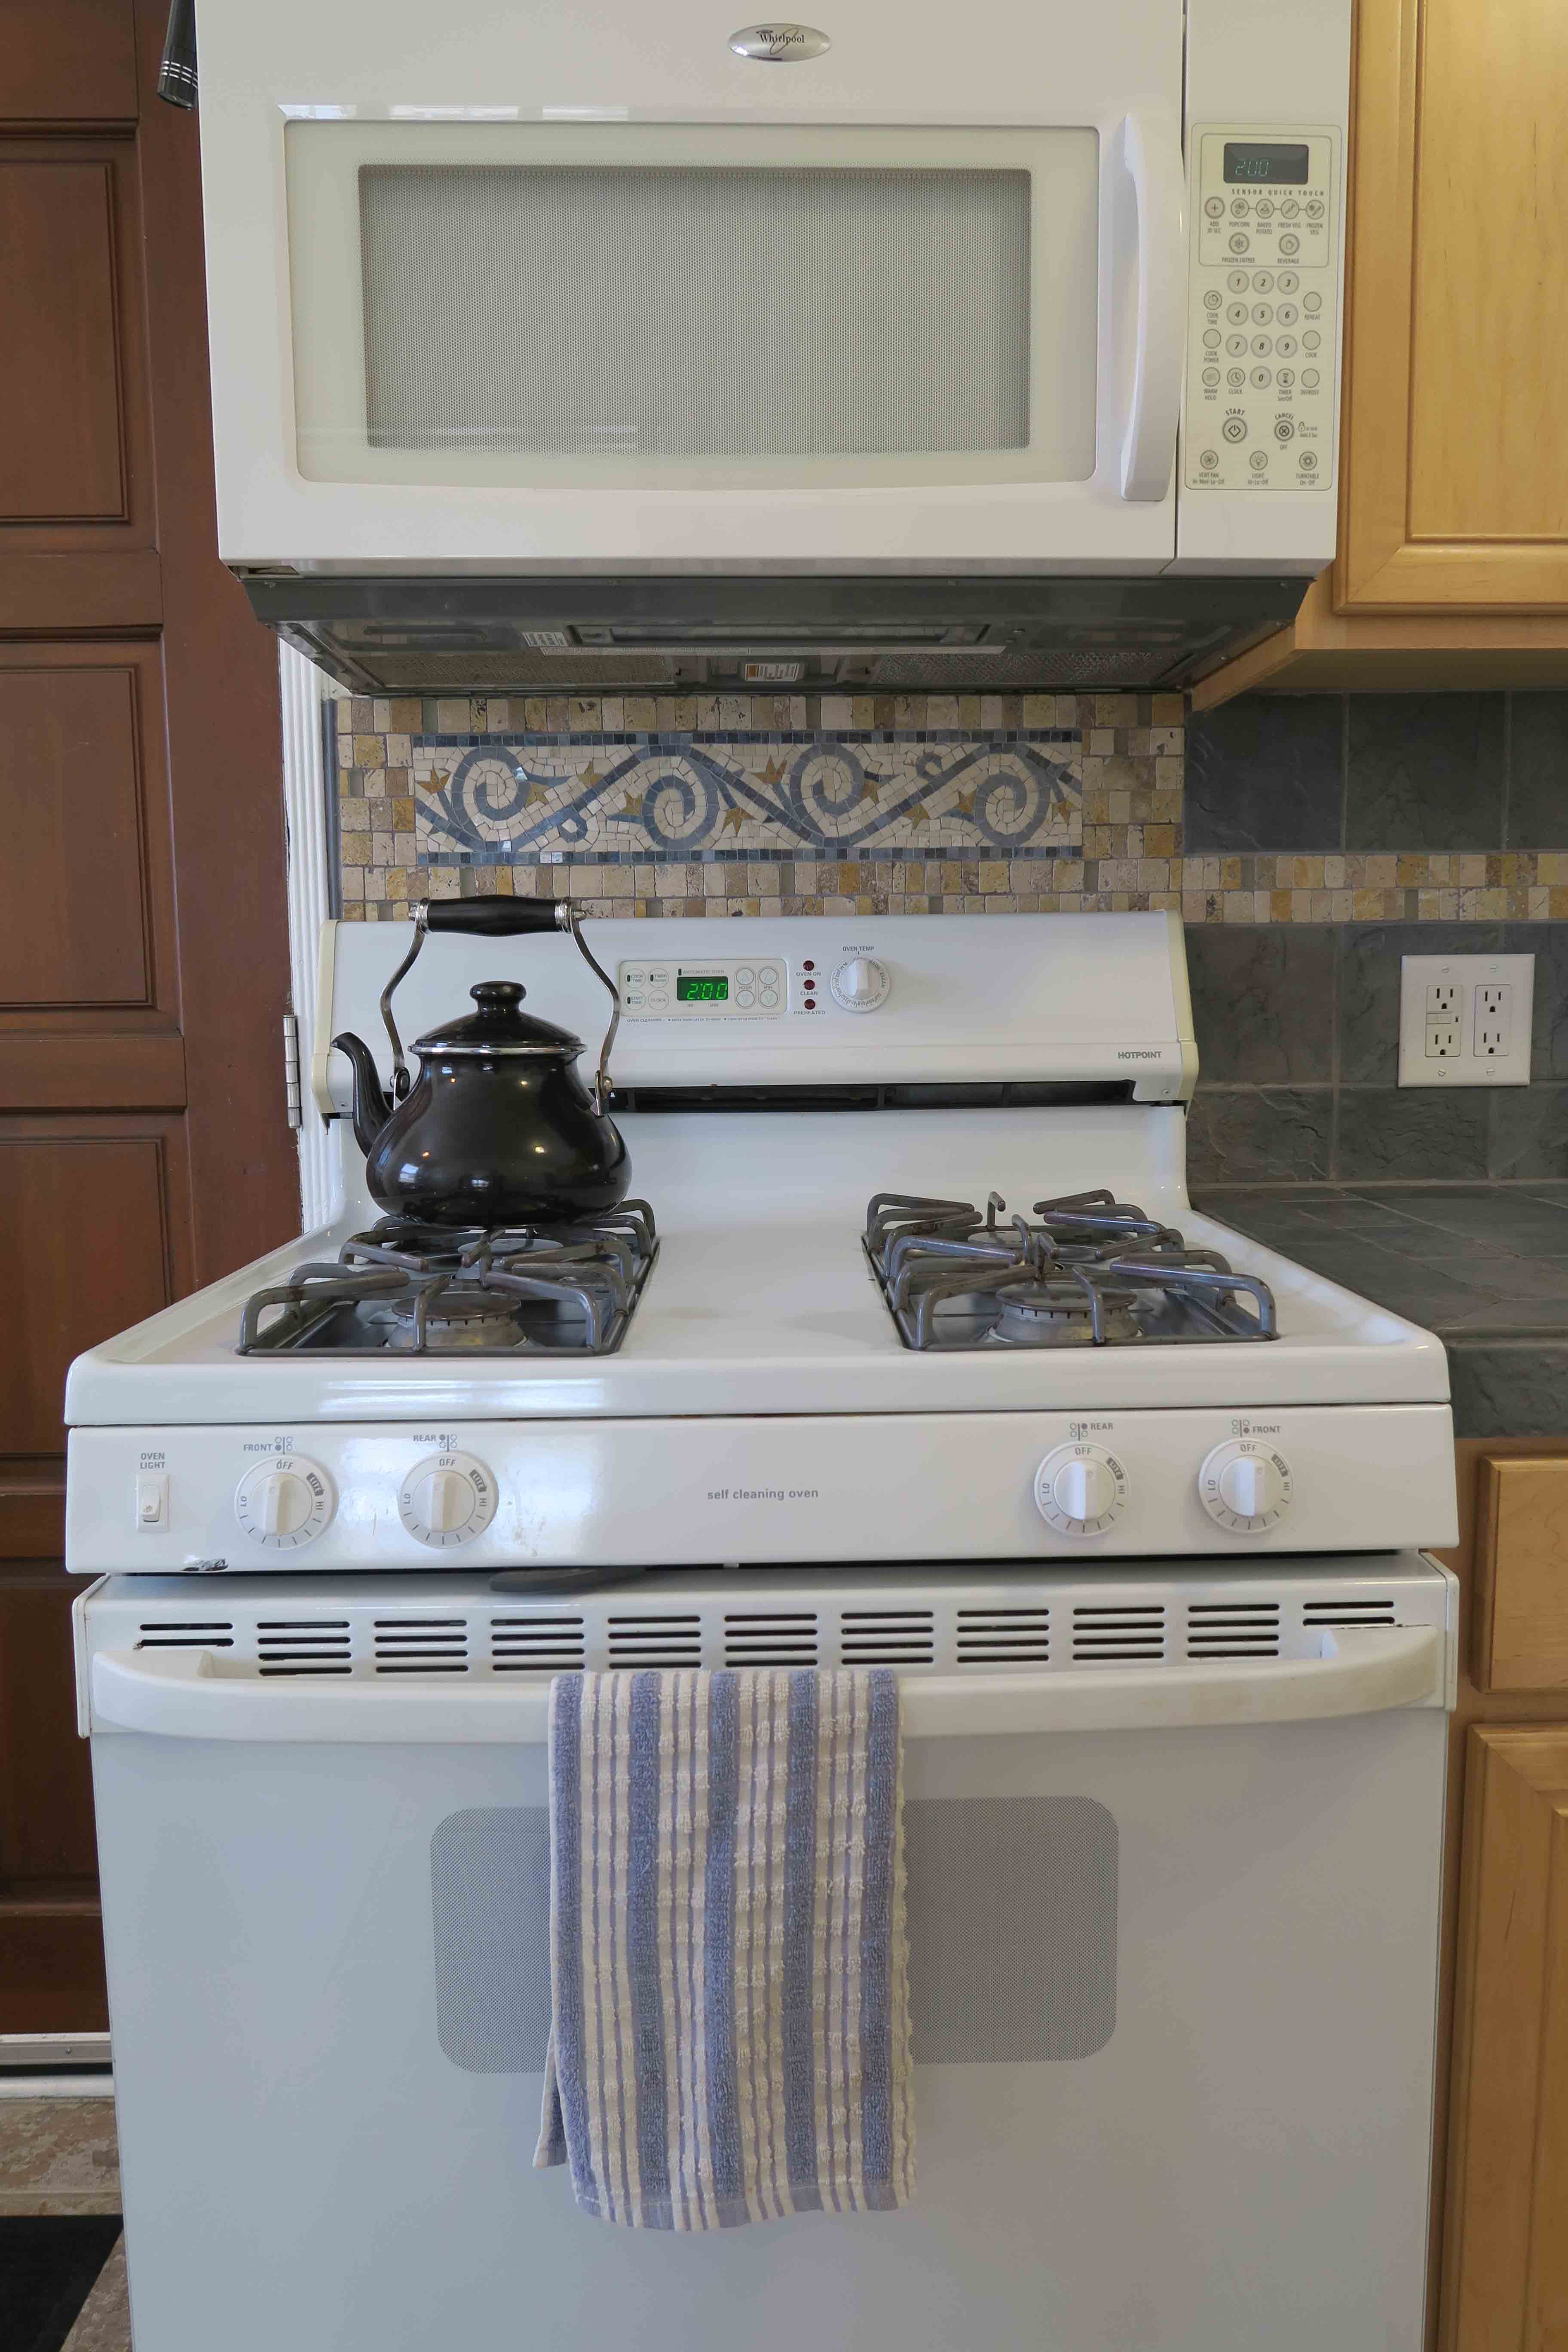 2739 Sereno - Stove with backsplash